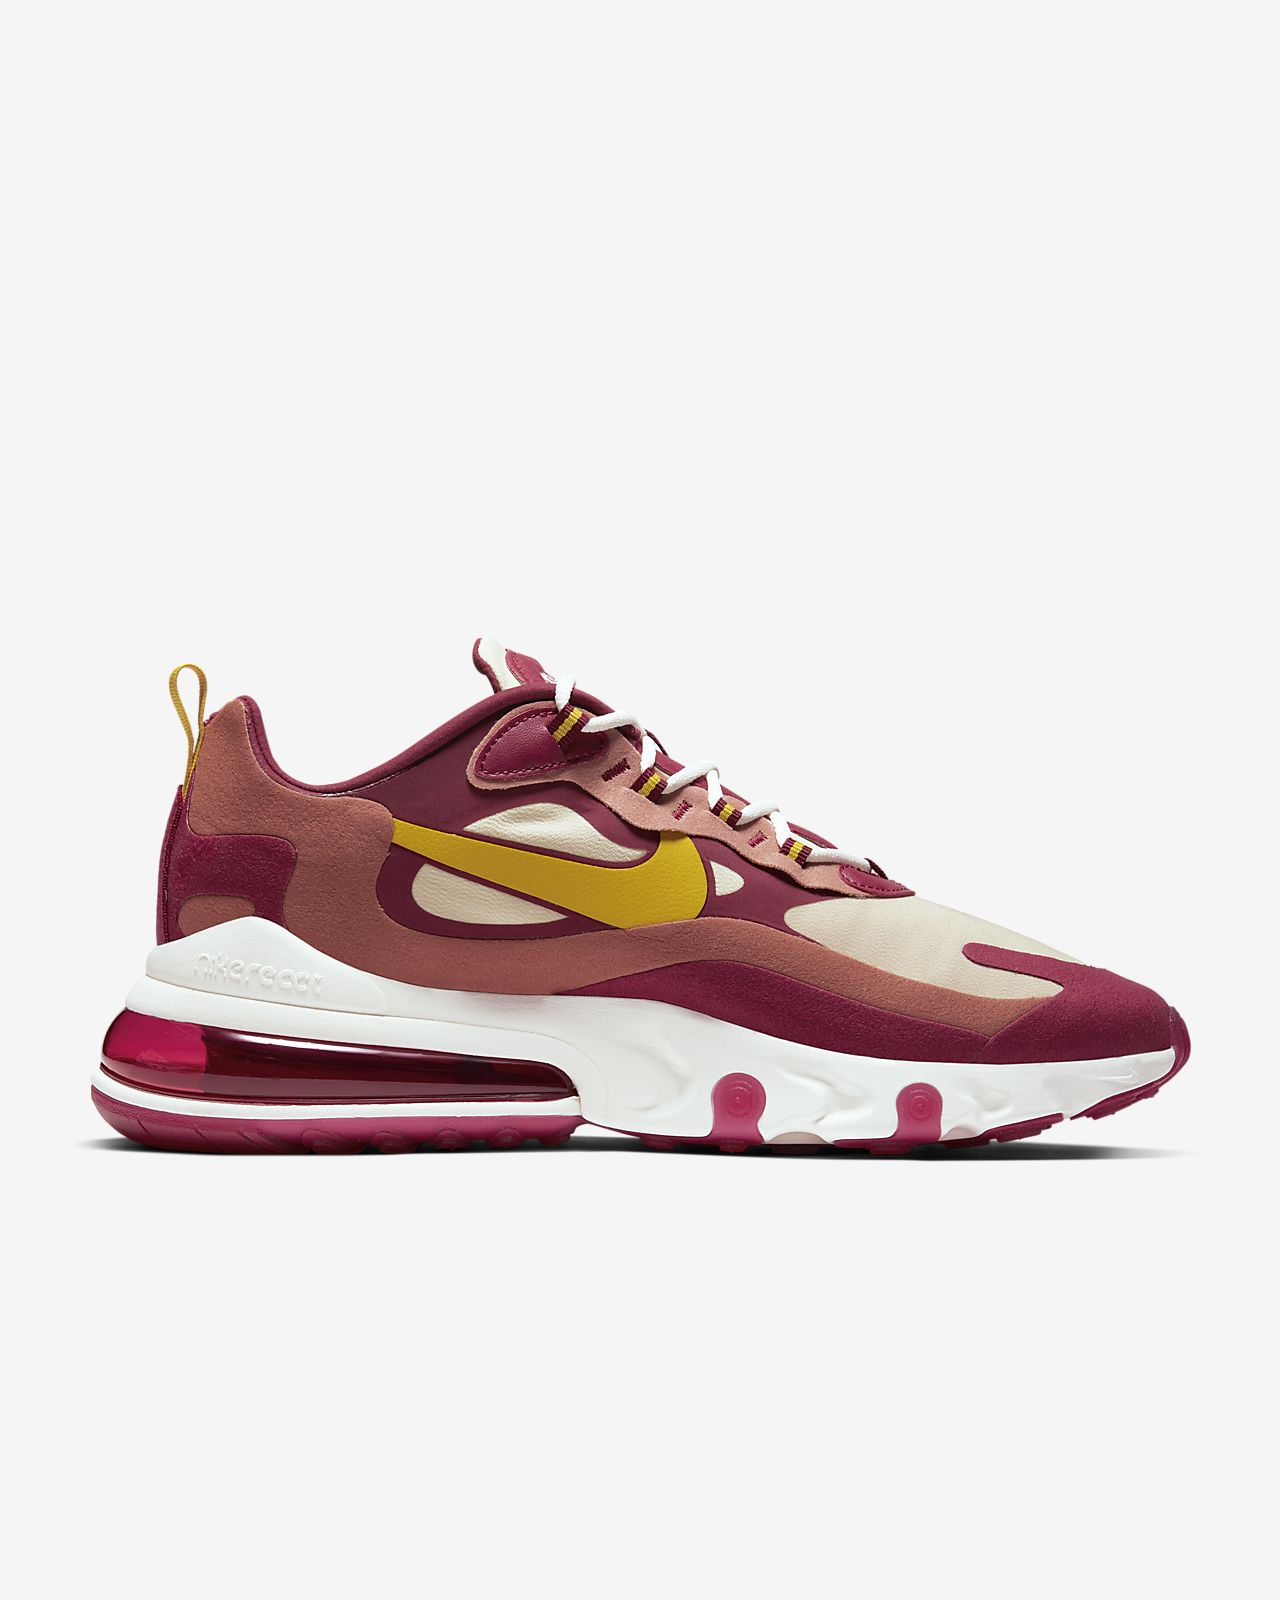 Nike Air Max 270 React in bunt AT6174 300 in 2019